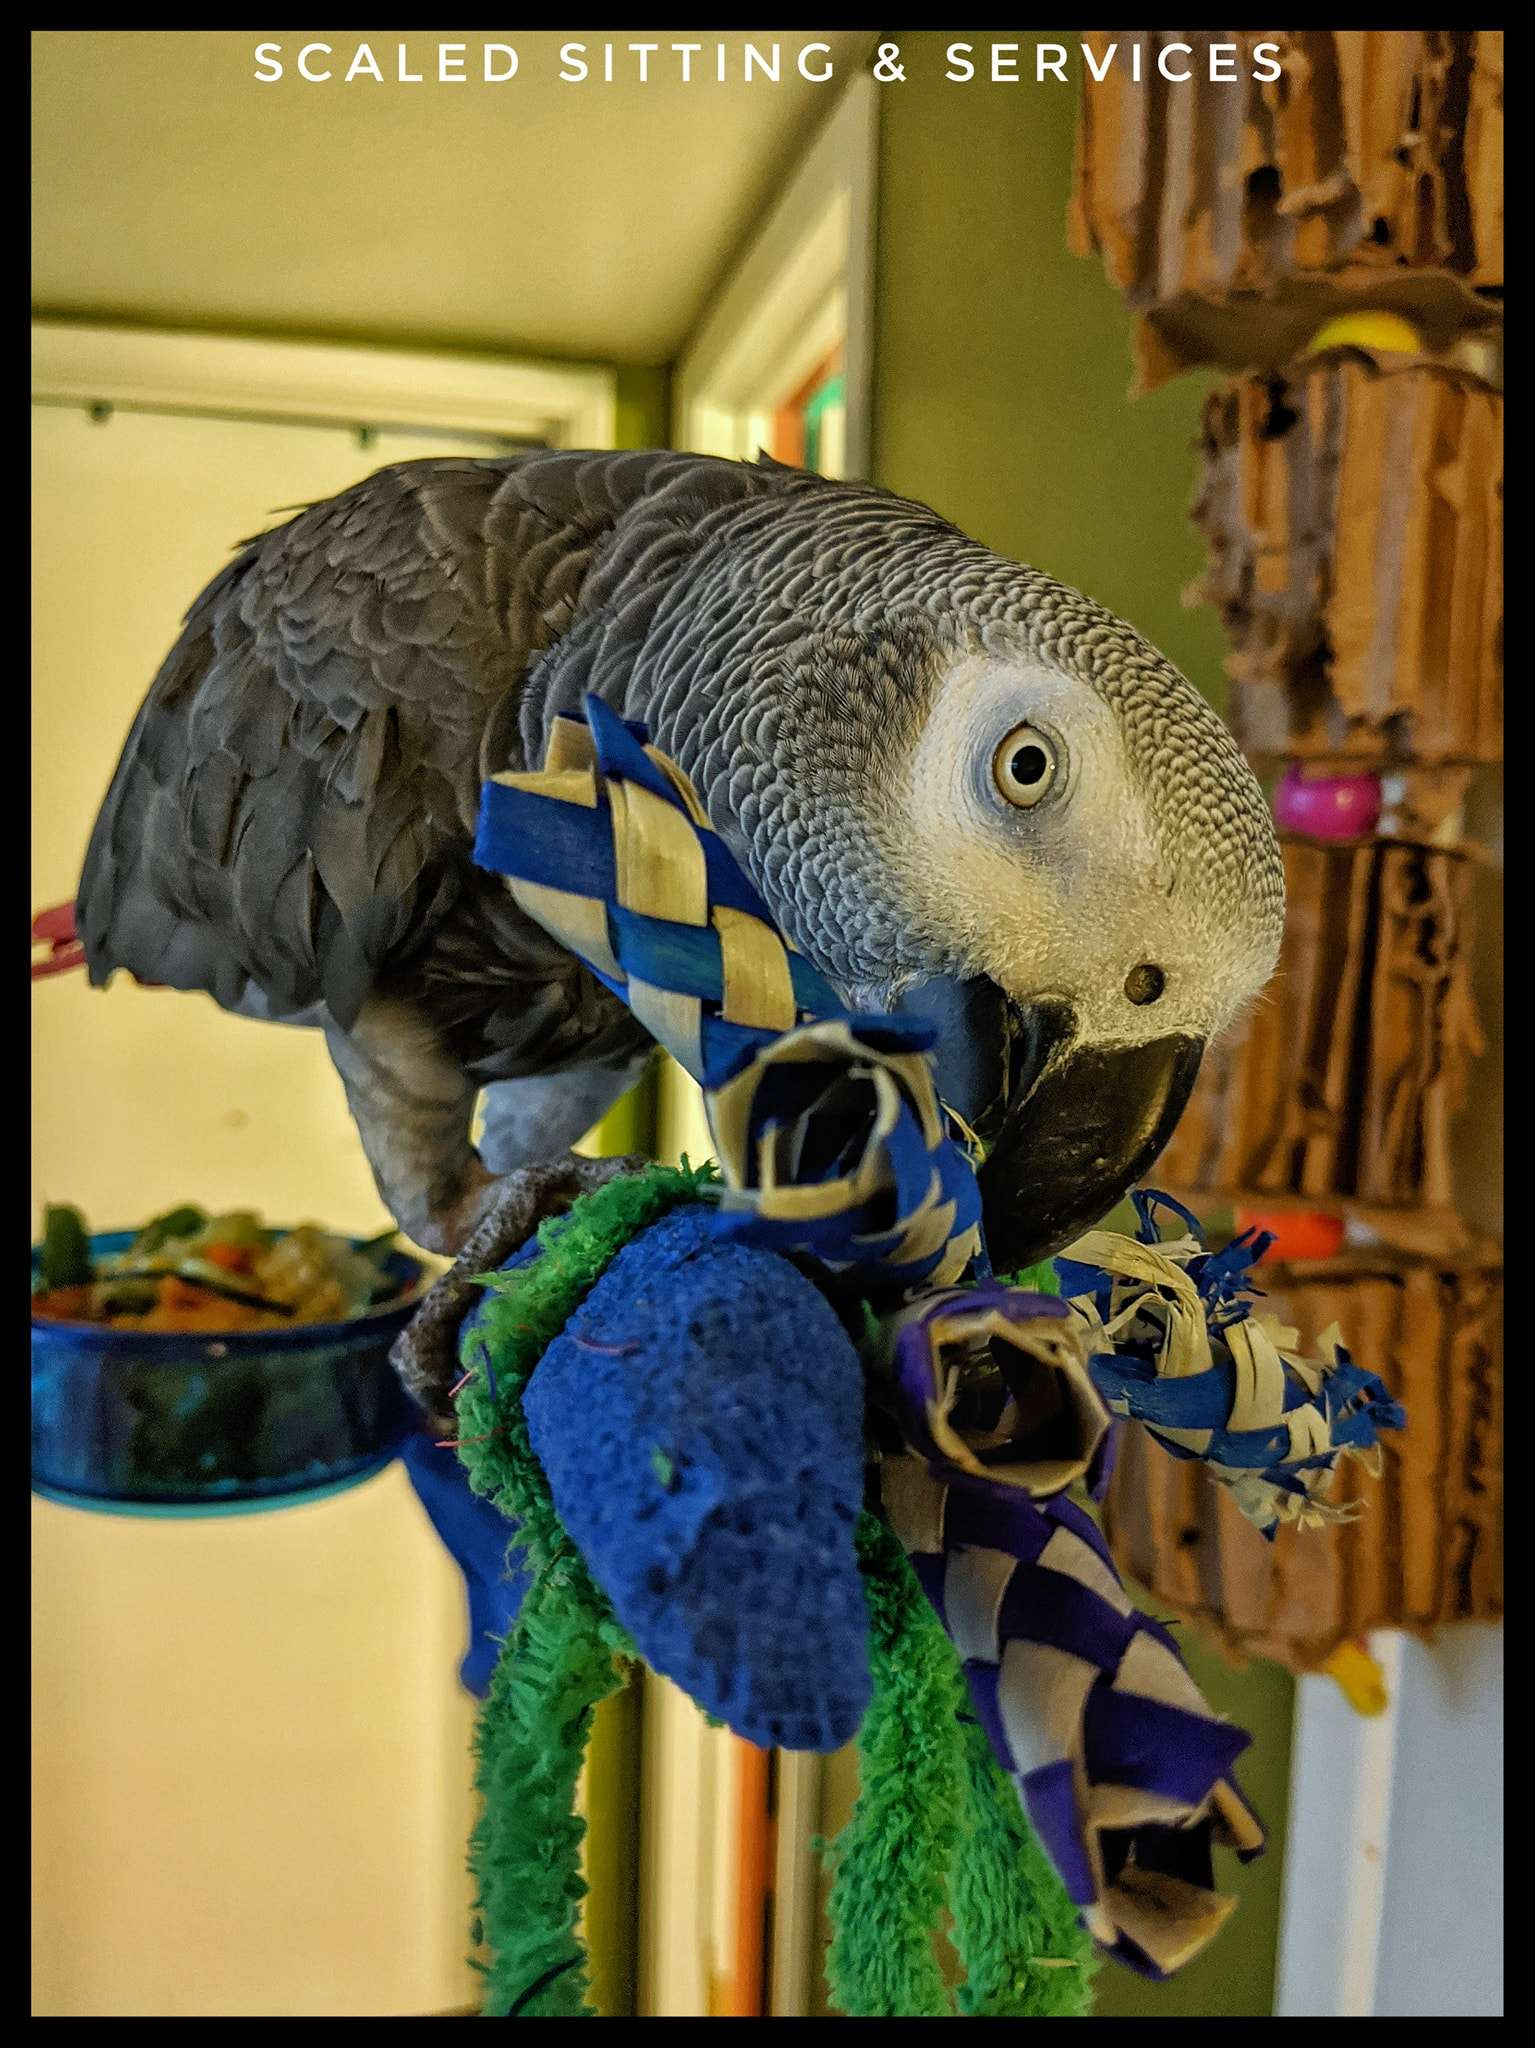 african grey parrot on perch chewing on toy